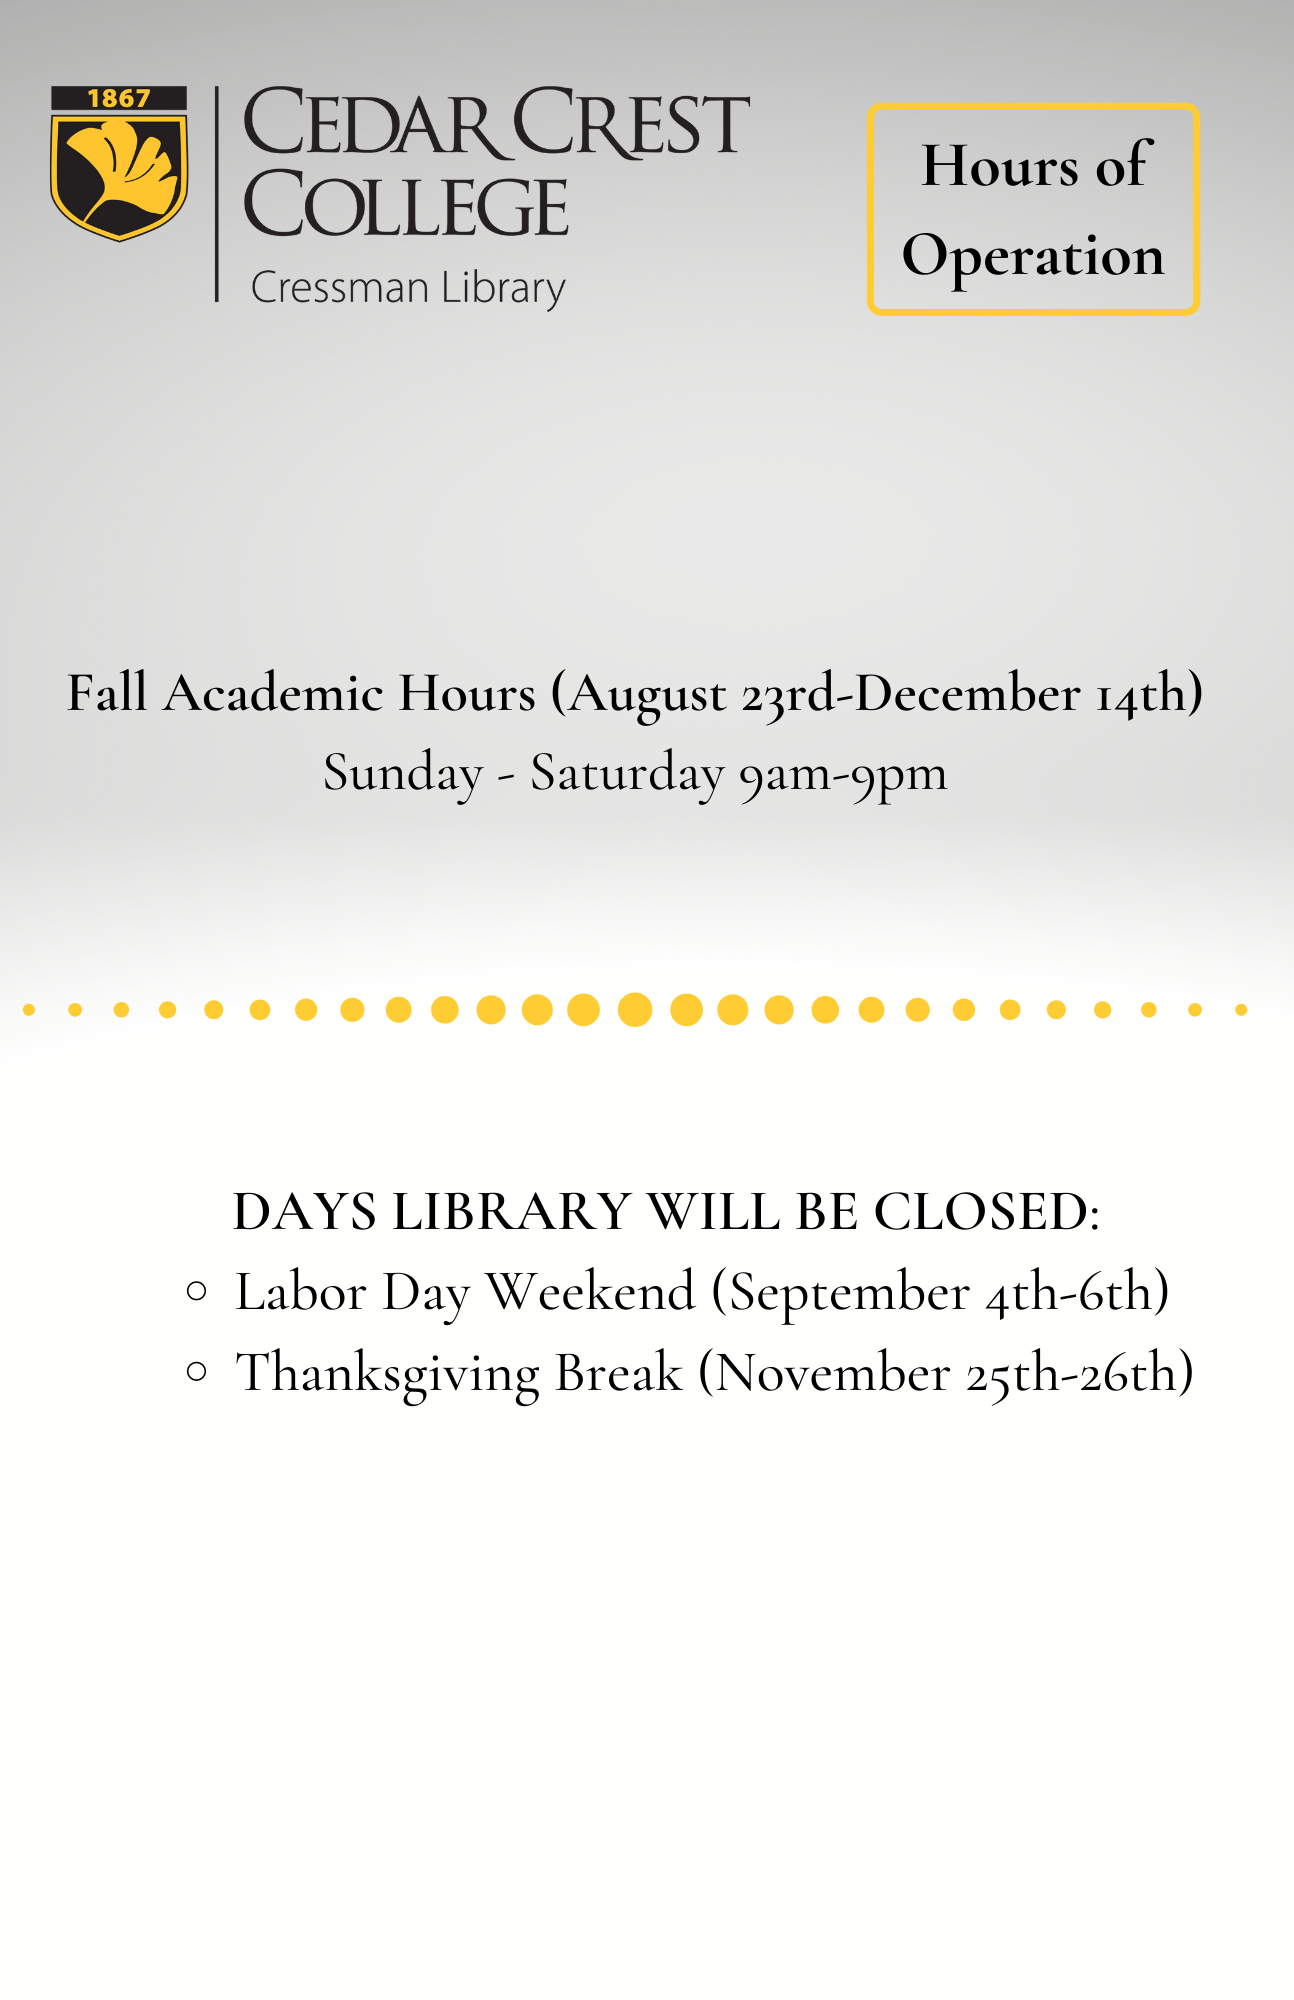 Hours Flyer Fall Academic Hours August 23rd to December 14th Sunday through Saturday 9 a.m. to 9 p.m. Closed labor day weekend September 4th, 5th, 6th. Closed Thanksgiving Break November 25th and 26th.